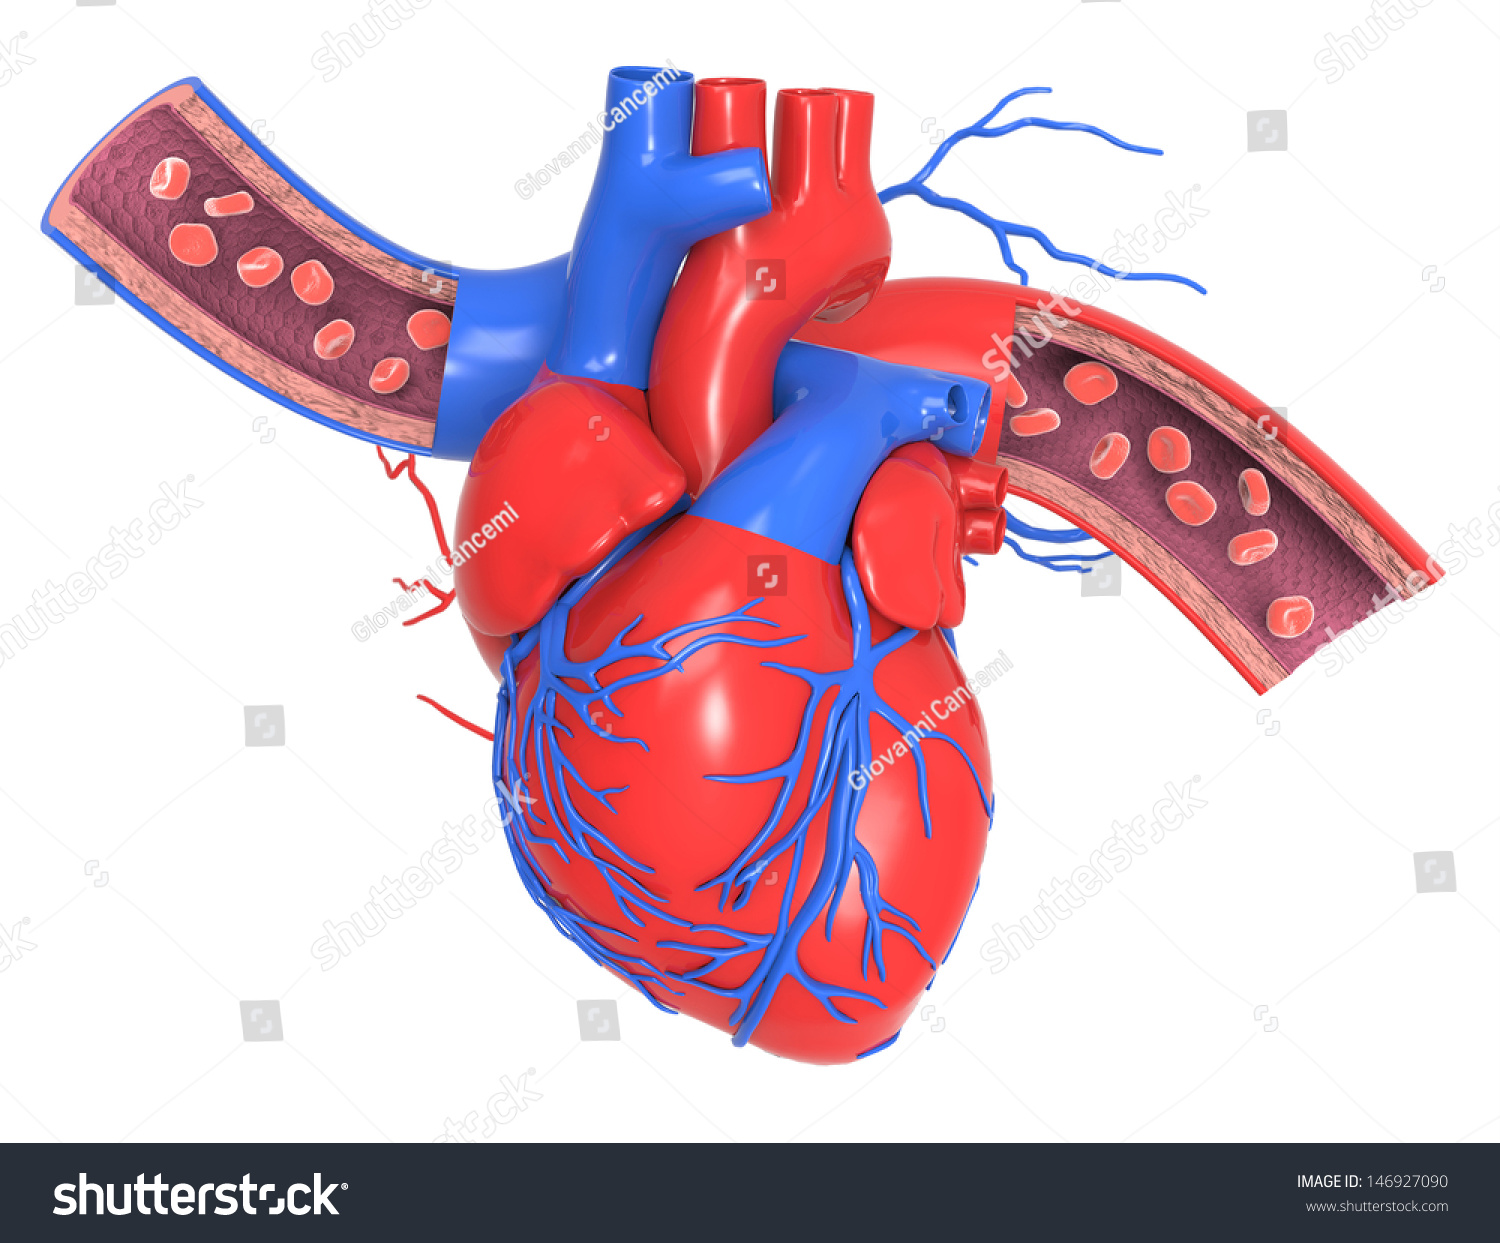 how to clean heart arteries